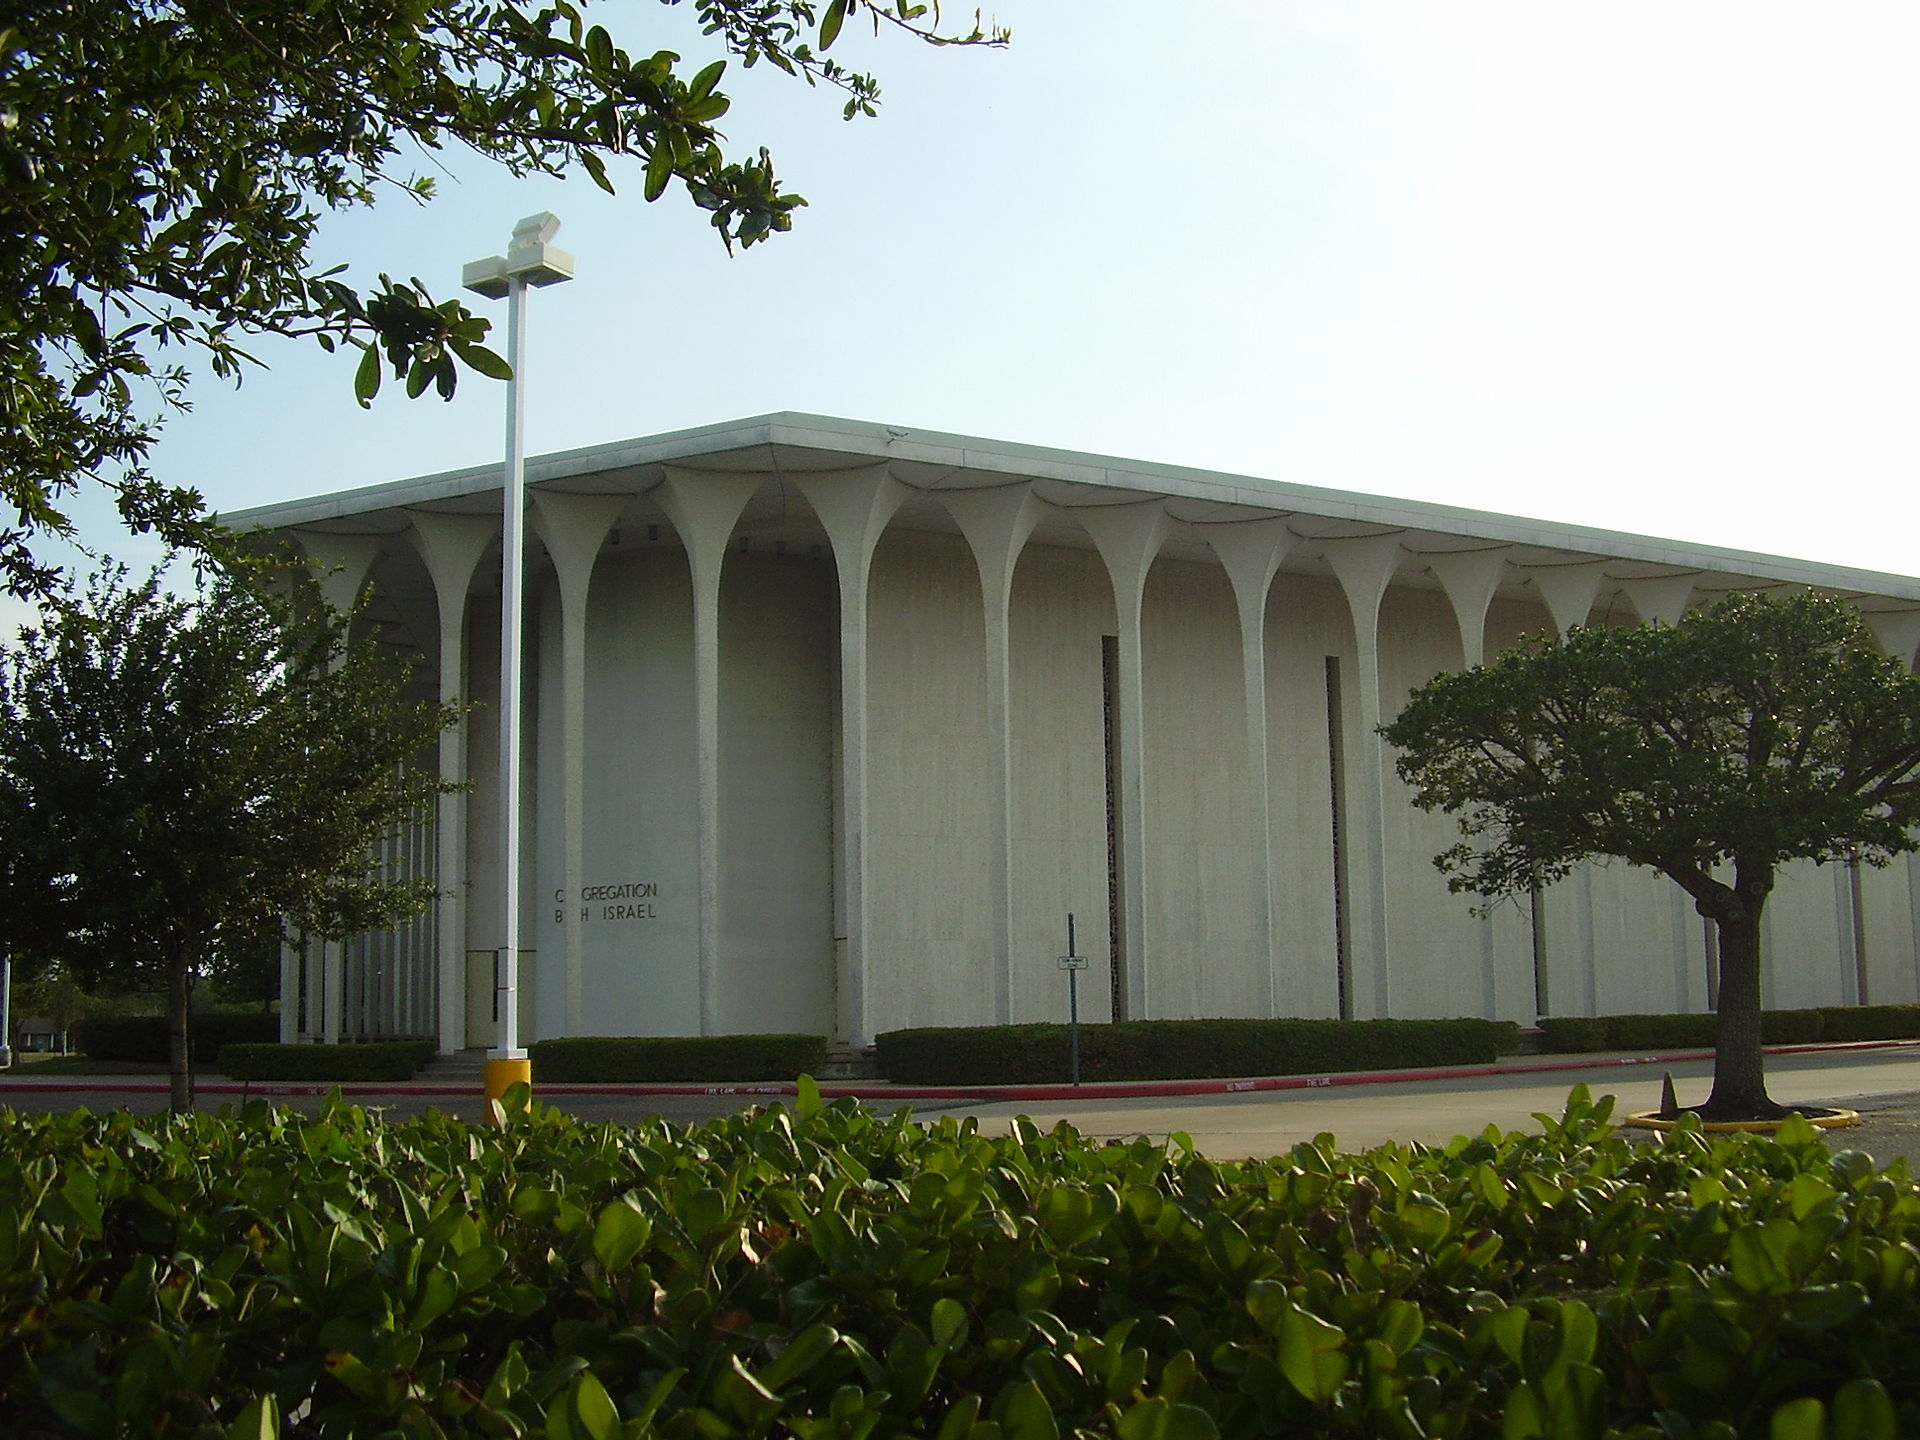 Congregation Beth Israel built this temple in 1967.